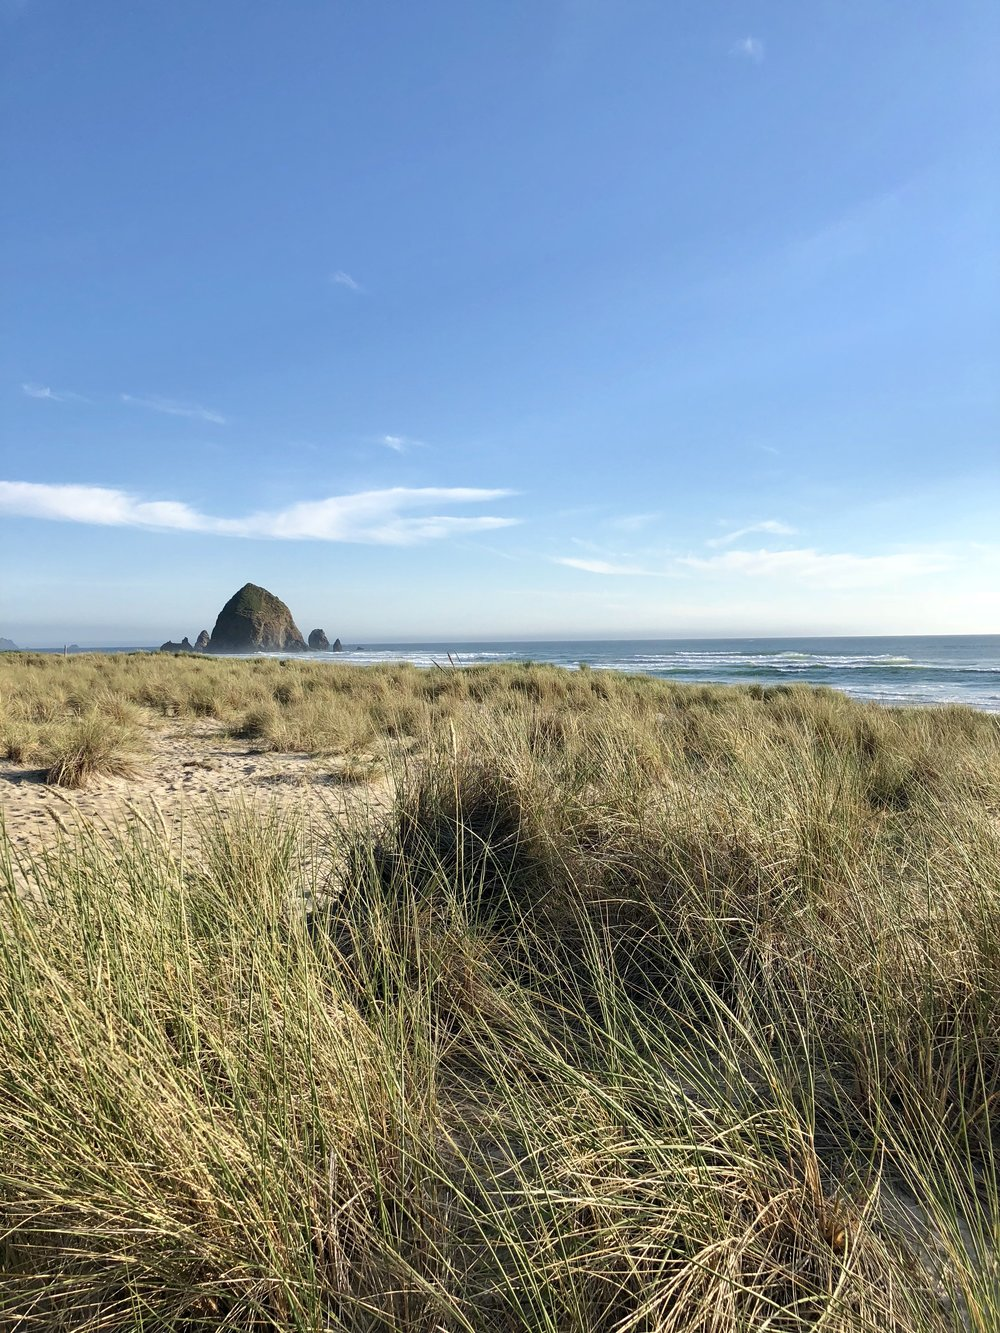 Cannon Beach:  This sleepy little beach town is known for its famous Haystack Rocks and is the perfect getaway spot. The town strictly enforces regulations that limit large chains and restaurants and, instead, residents and visitors support local businesses and cafes.